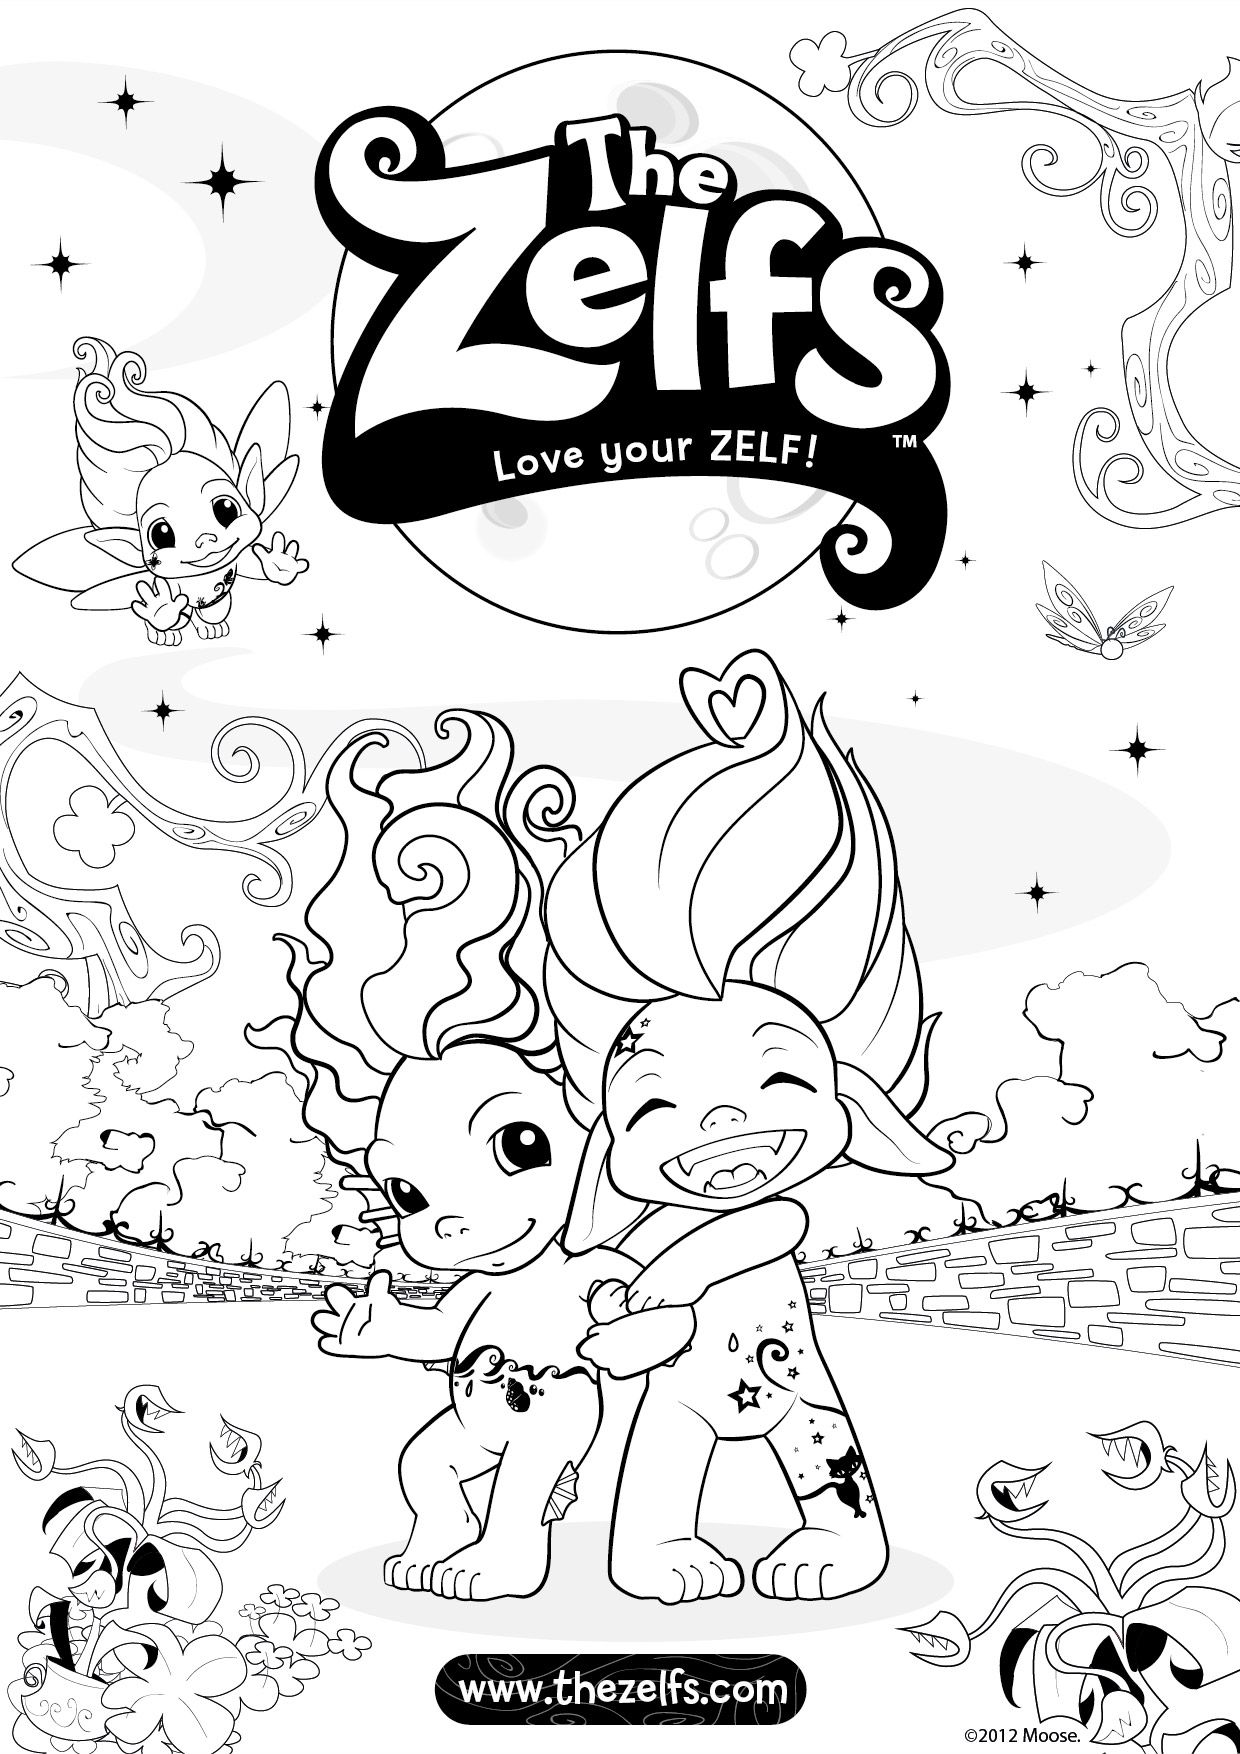 zelf colouring pages - Google Search | Colouring Pages | Pinterest ...